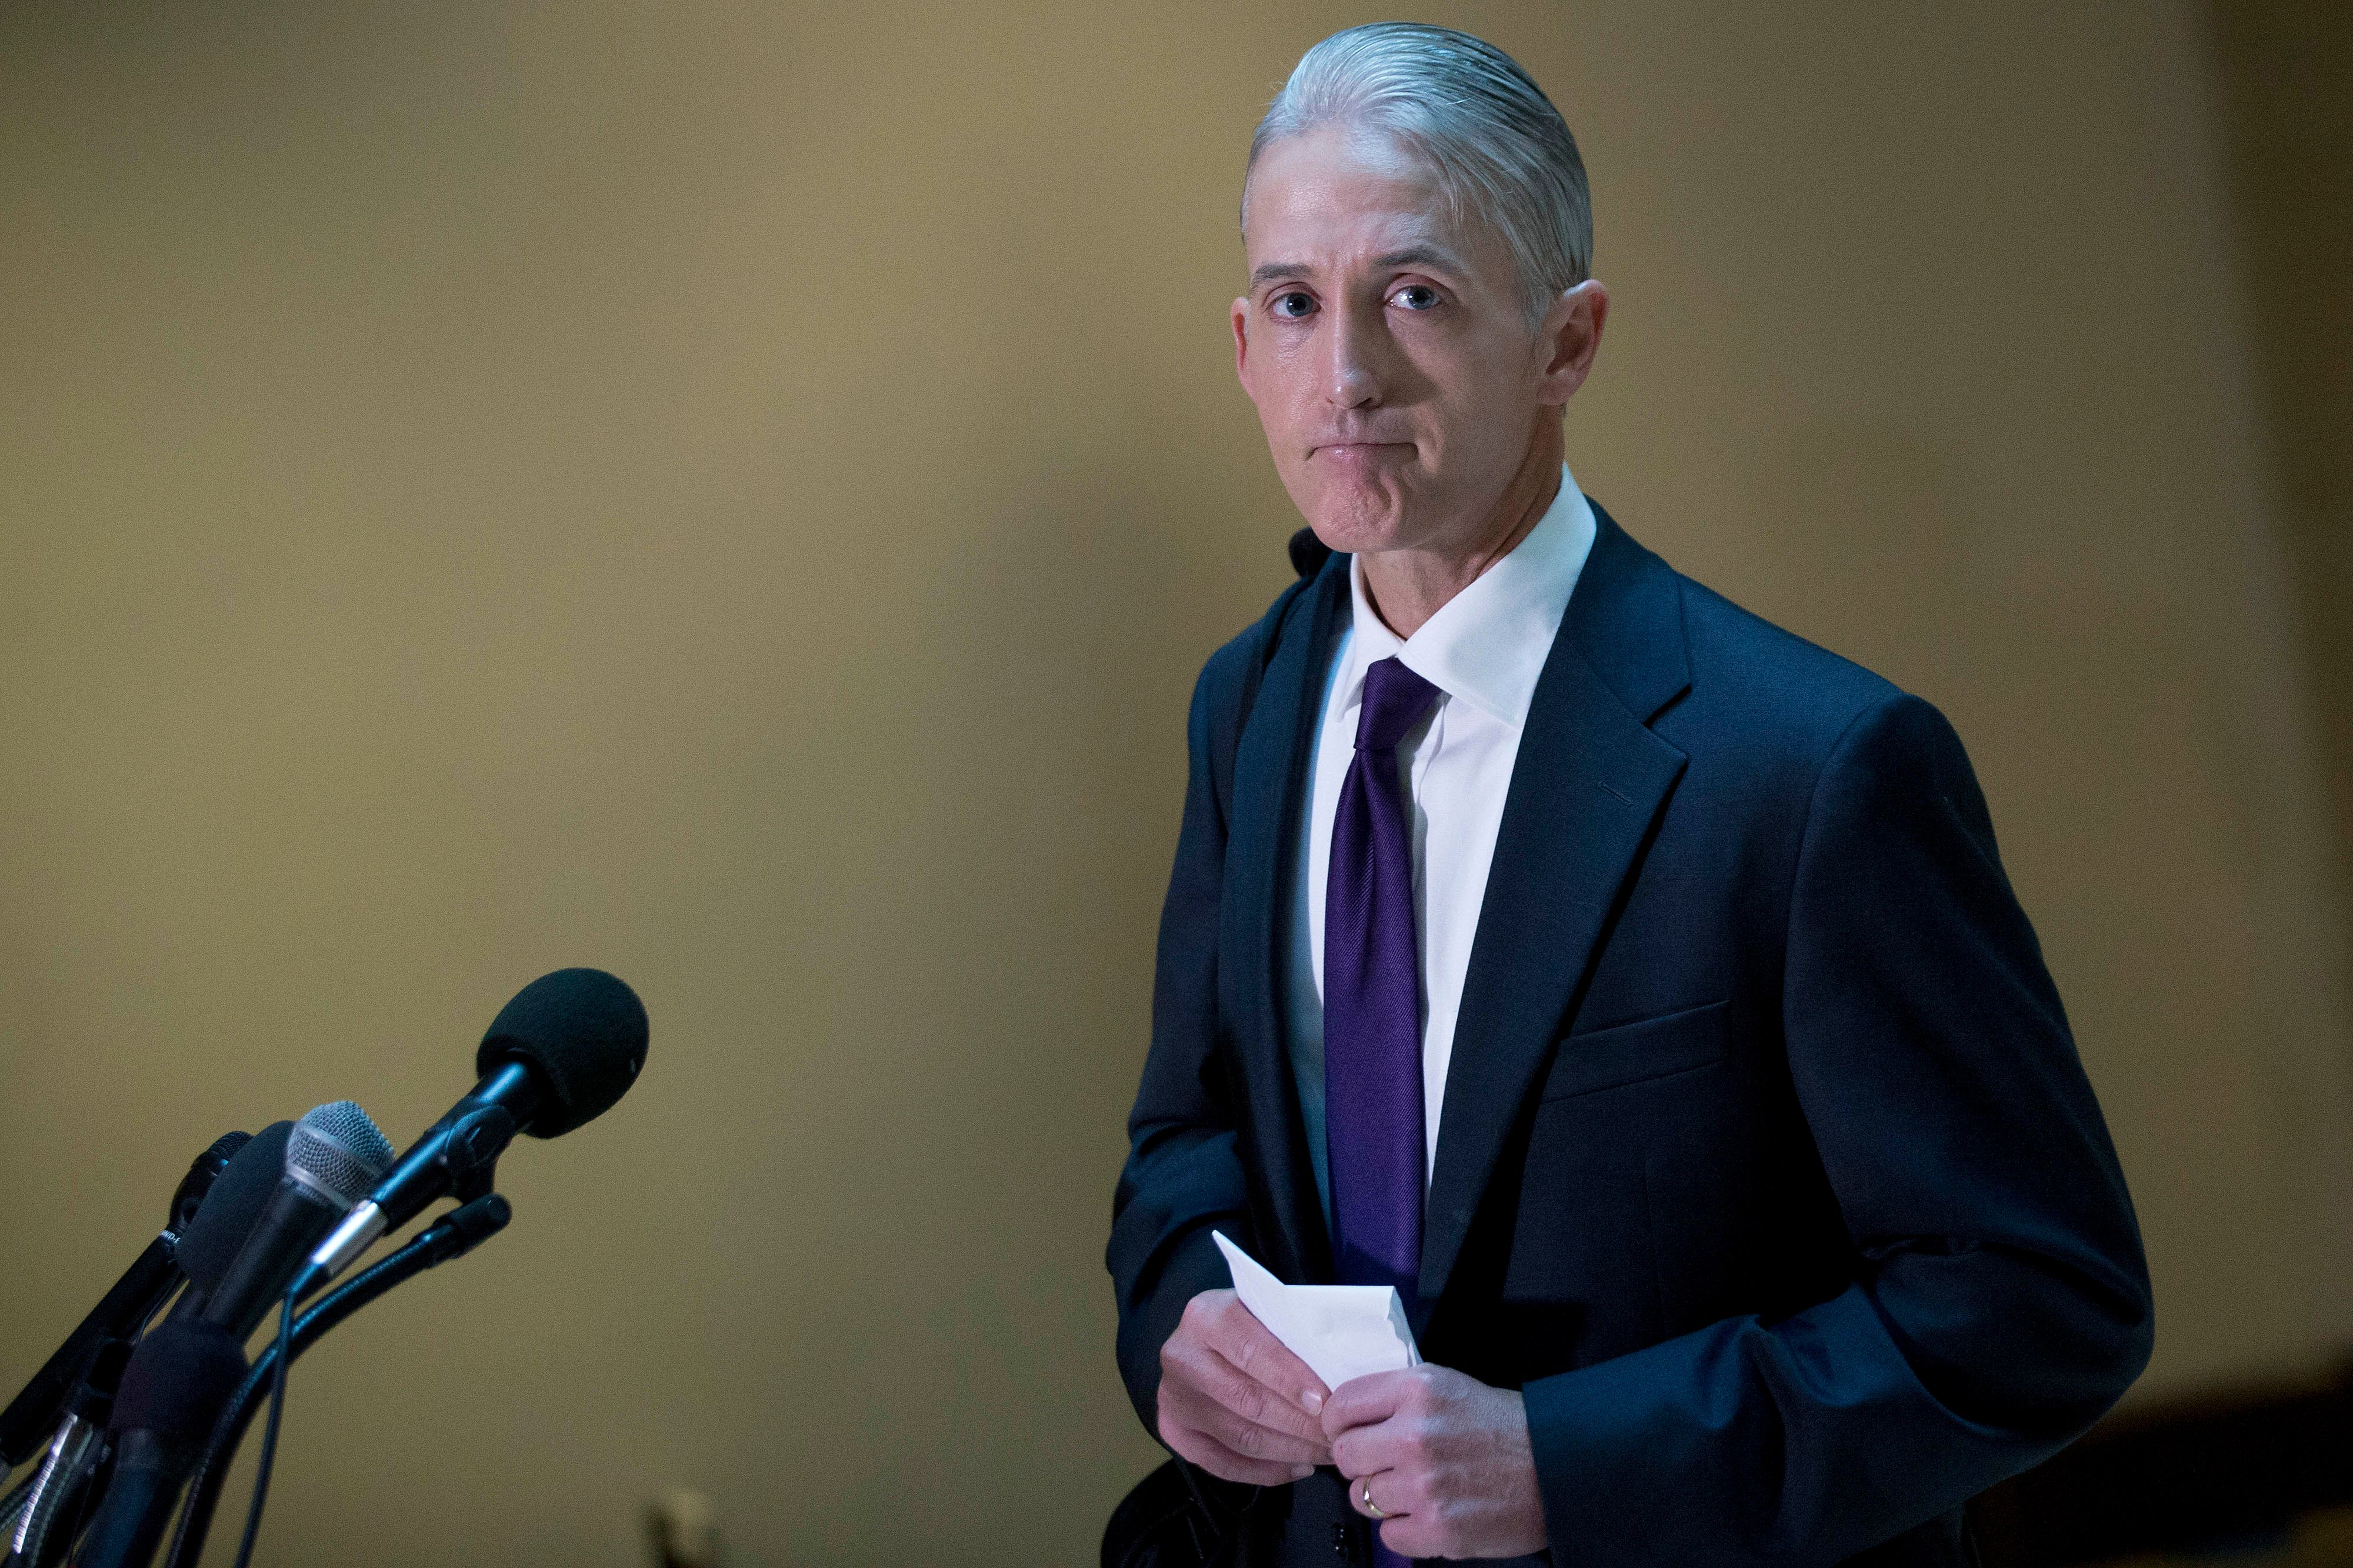 Representative Trey Gowdy, a Republican from South Carolina and chairman of the House Benghazi Committee, pauses while speaking to the media as he arrives to a closed interview with Cheryl Mills, former State Department chief of staff under former Secretary of State Hillary Clinton, not pictured, on Capitol Hill in Washington, D.C., U.S., on Thursday, Sept. 3, 2015. Clinton's use of a private e-mail address and home server in the job has become a focus of the House committee's probe of the Obama administration's handling of a 2012 assault on a U.S. diplomatic compound in Benghazi, Libya. Photographer: Andrew Harrer/Bloomberg via Getty Images